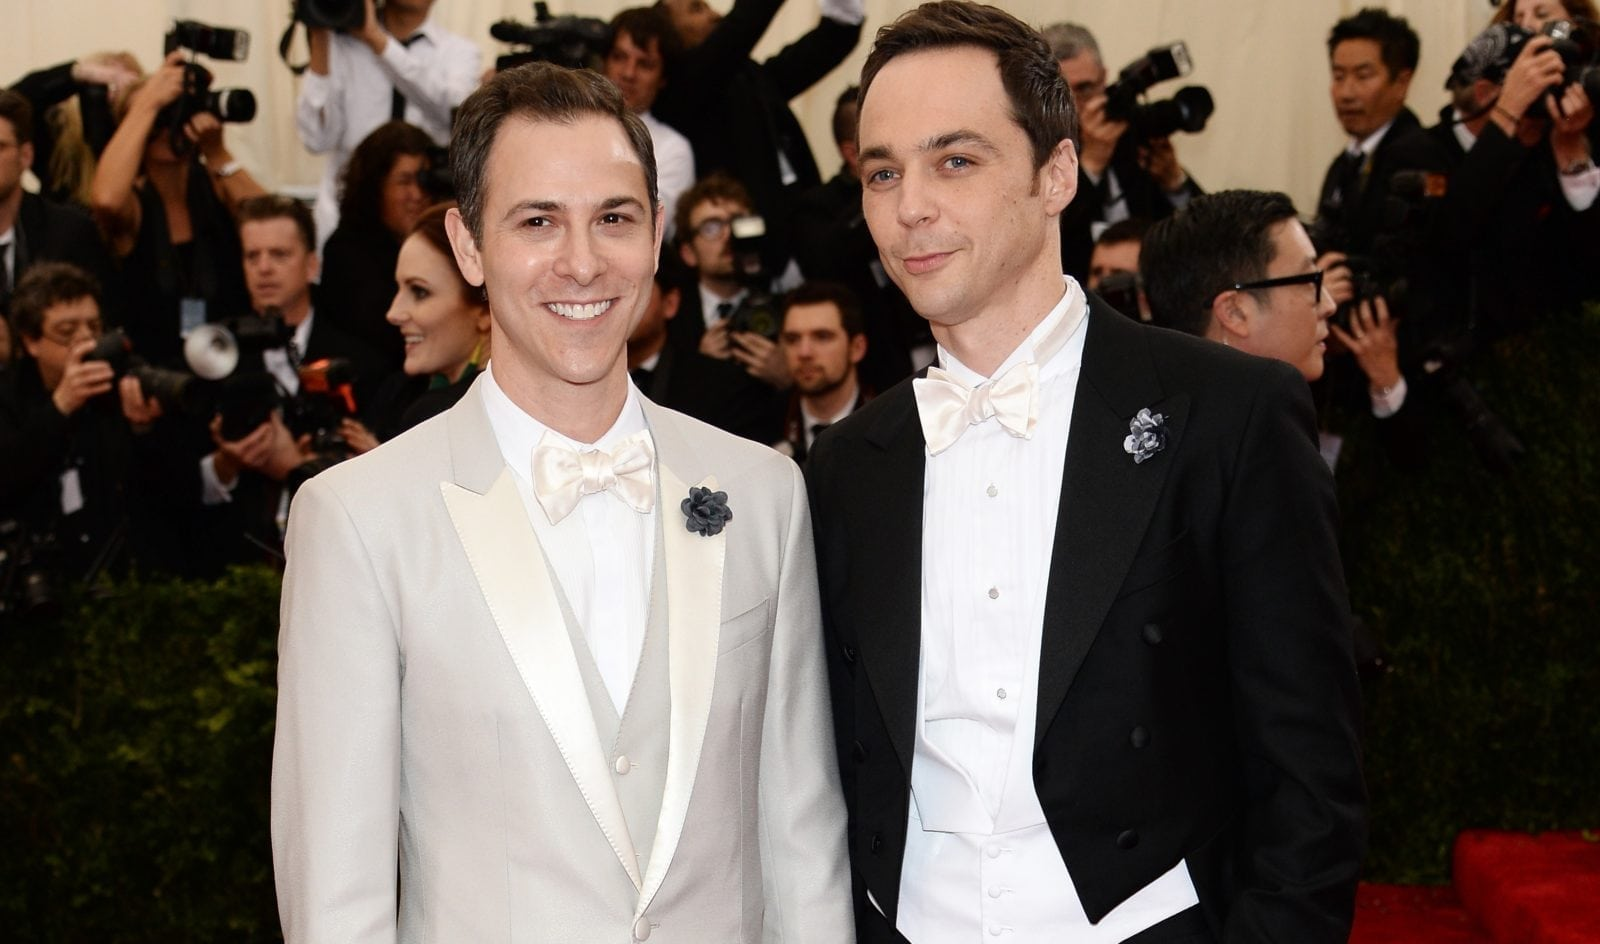 Big Bang Theory's Jim Parsons Opens About His 'very